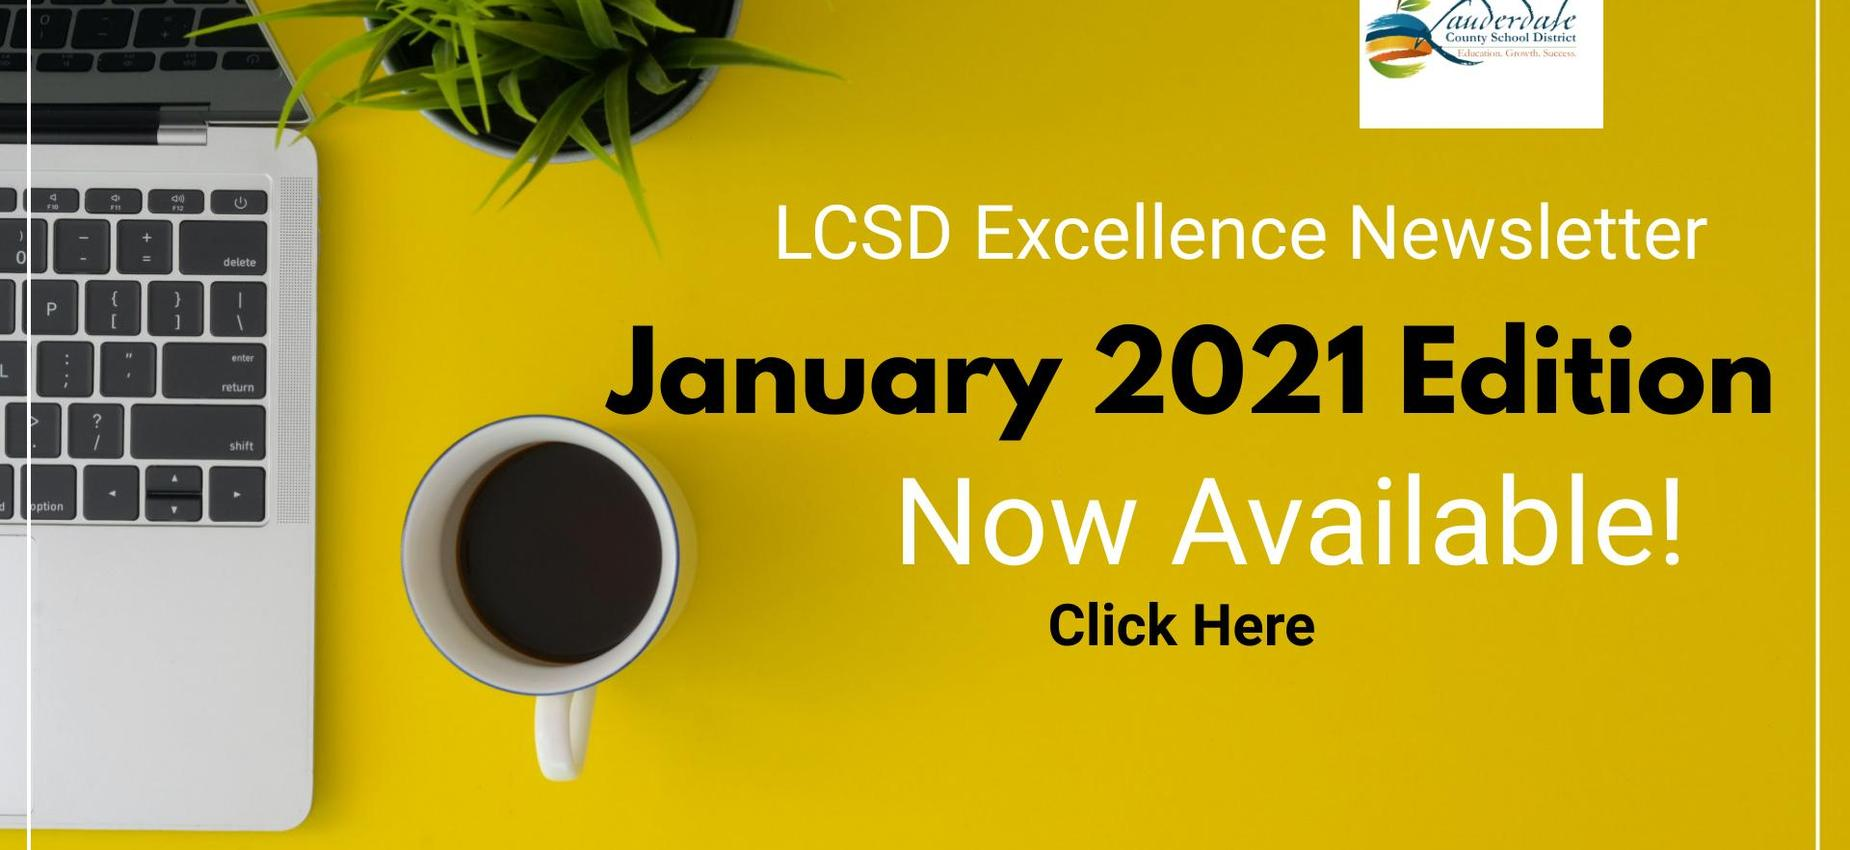 LCSD Excellence Website Graphic